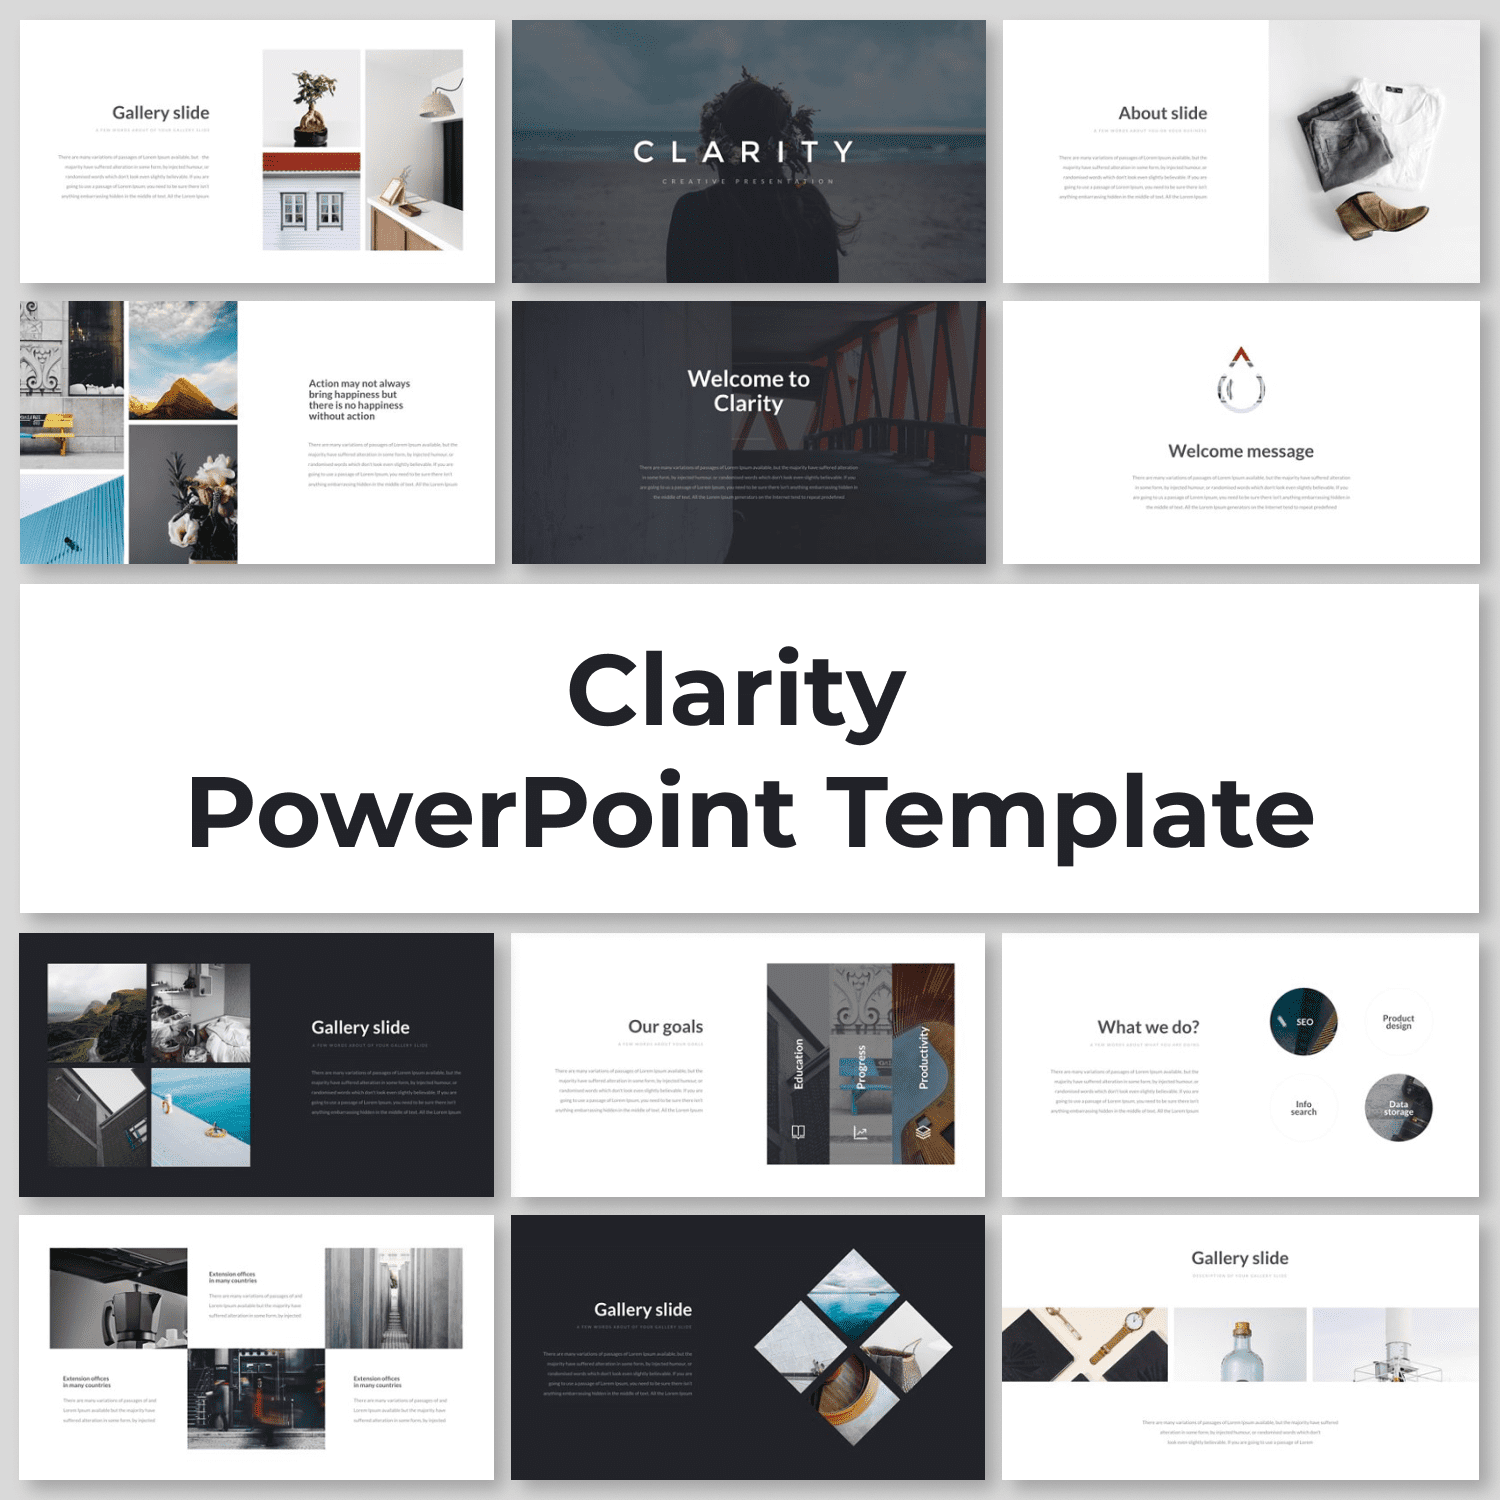 Clarity PowerPoint Template by MasterBundles.